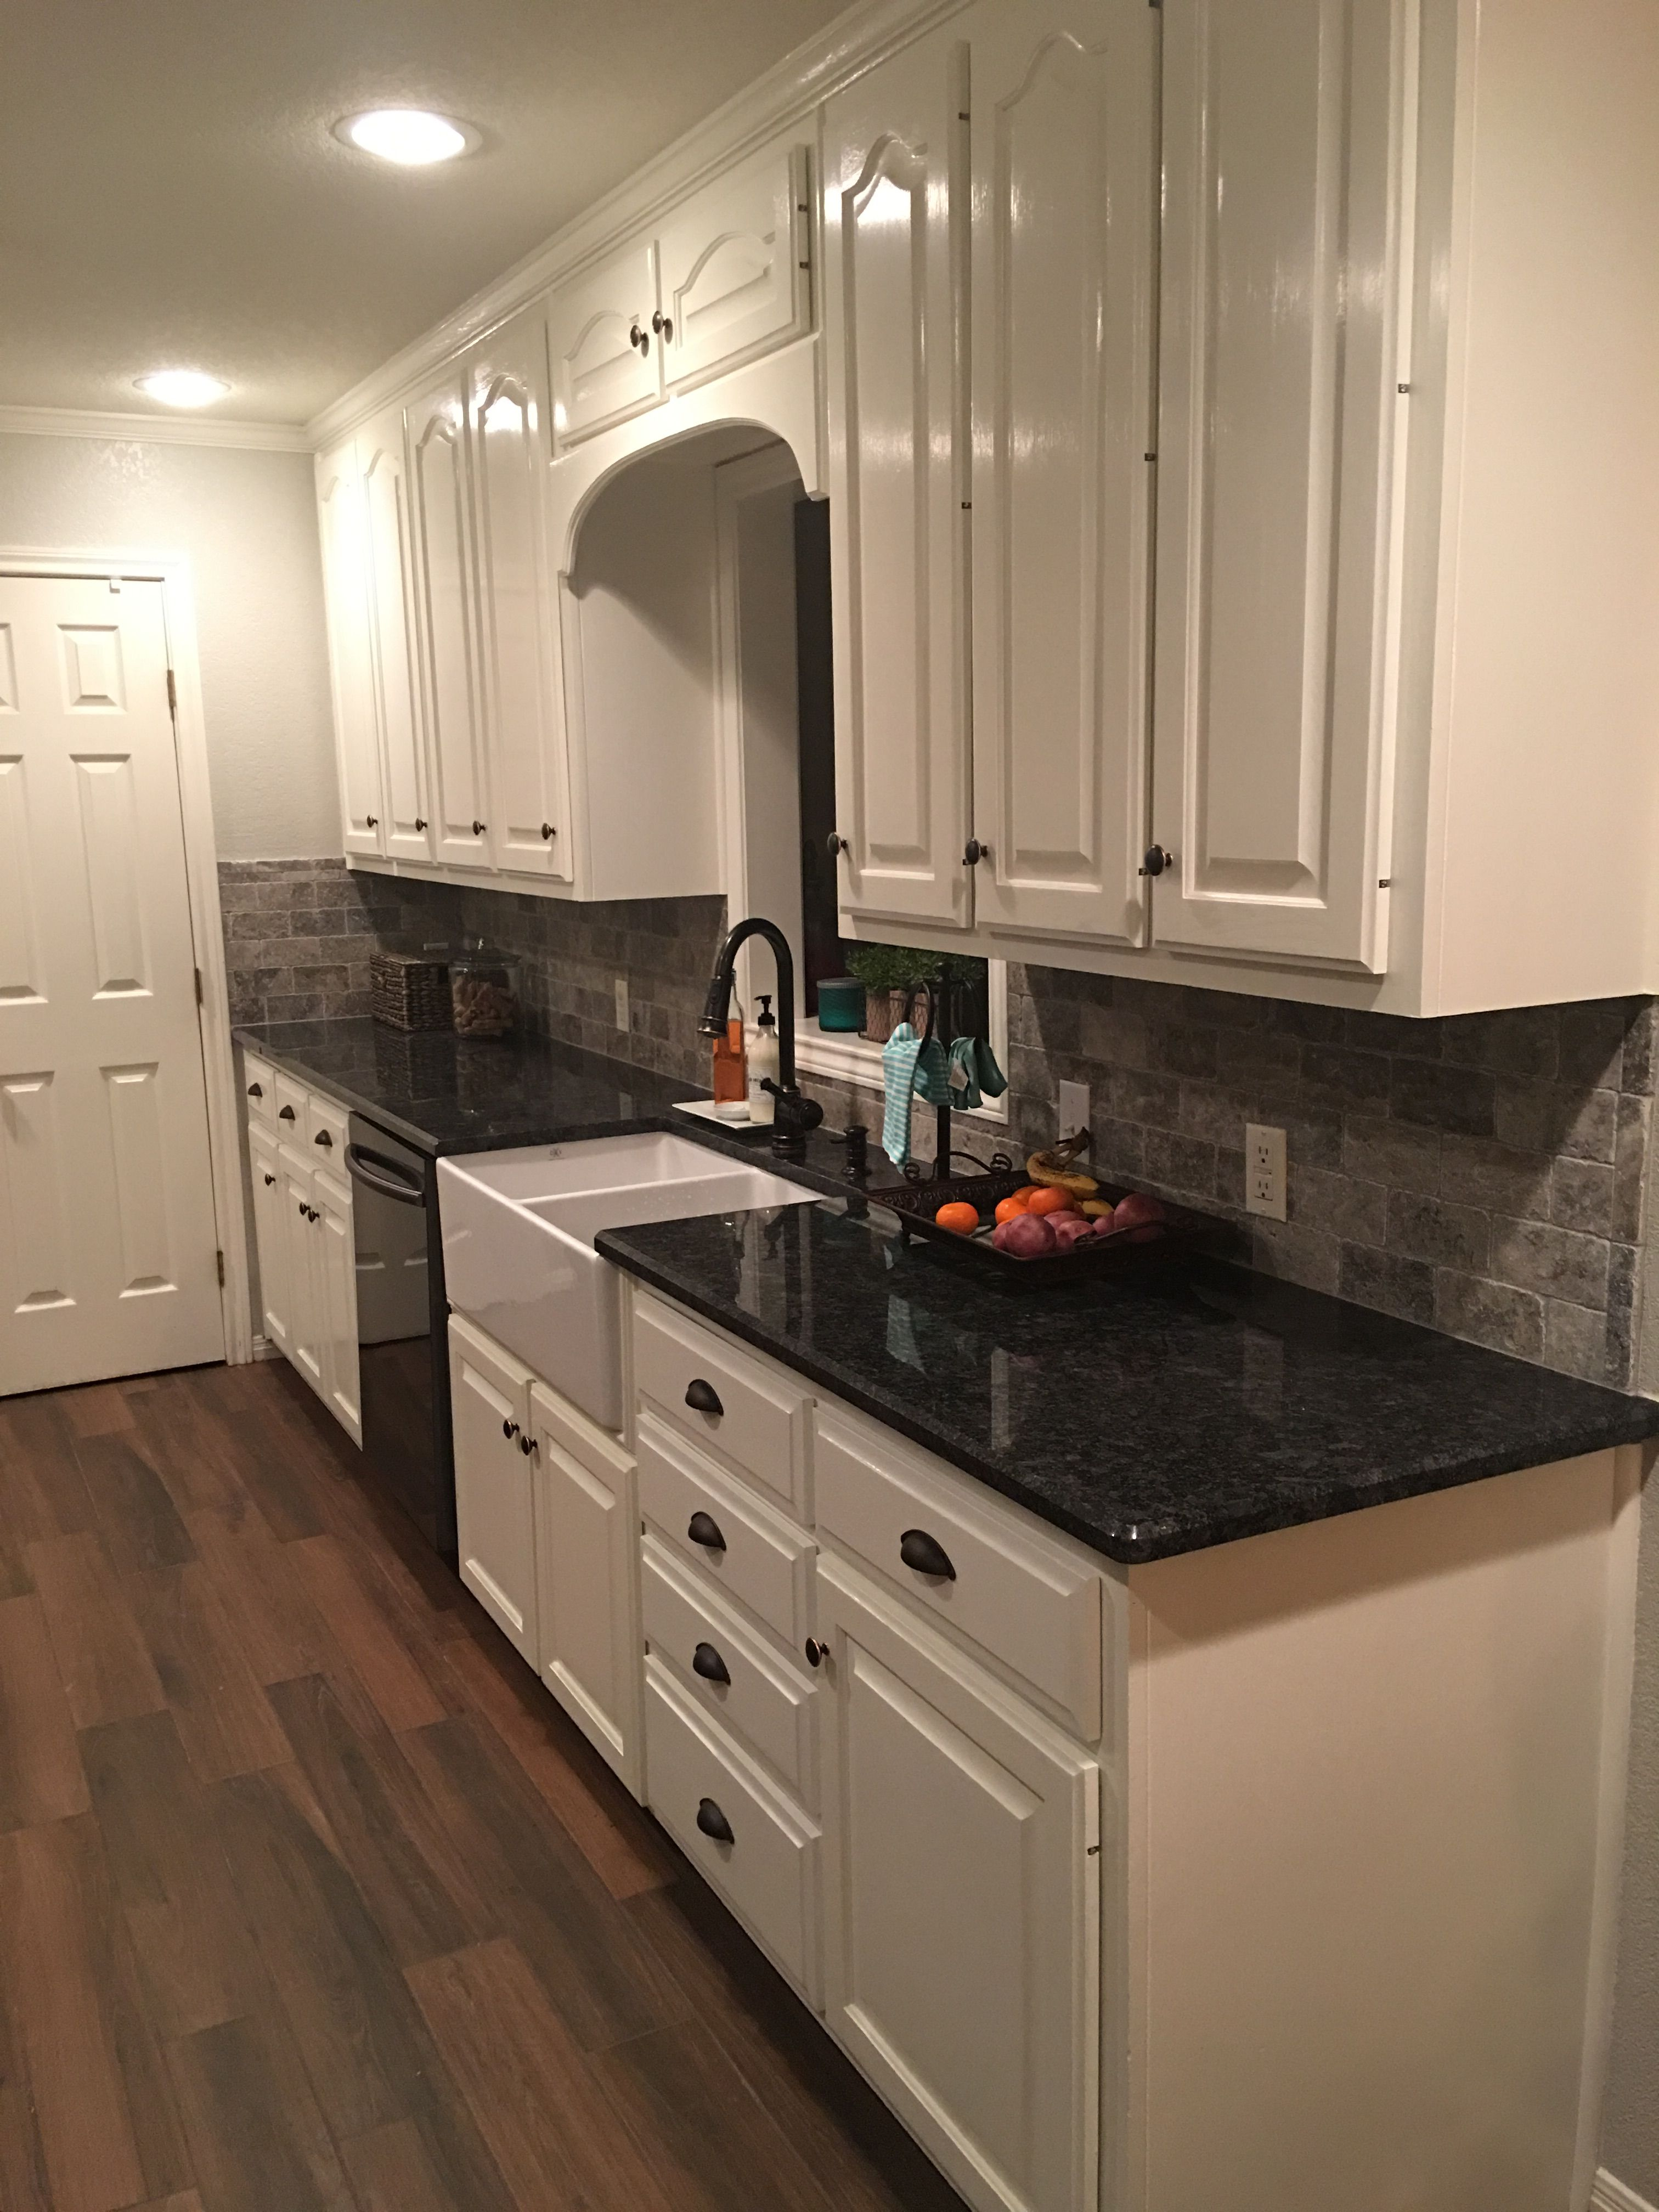 Black Stainless Steel Appliances Steel Gray Counter Tops